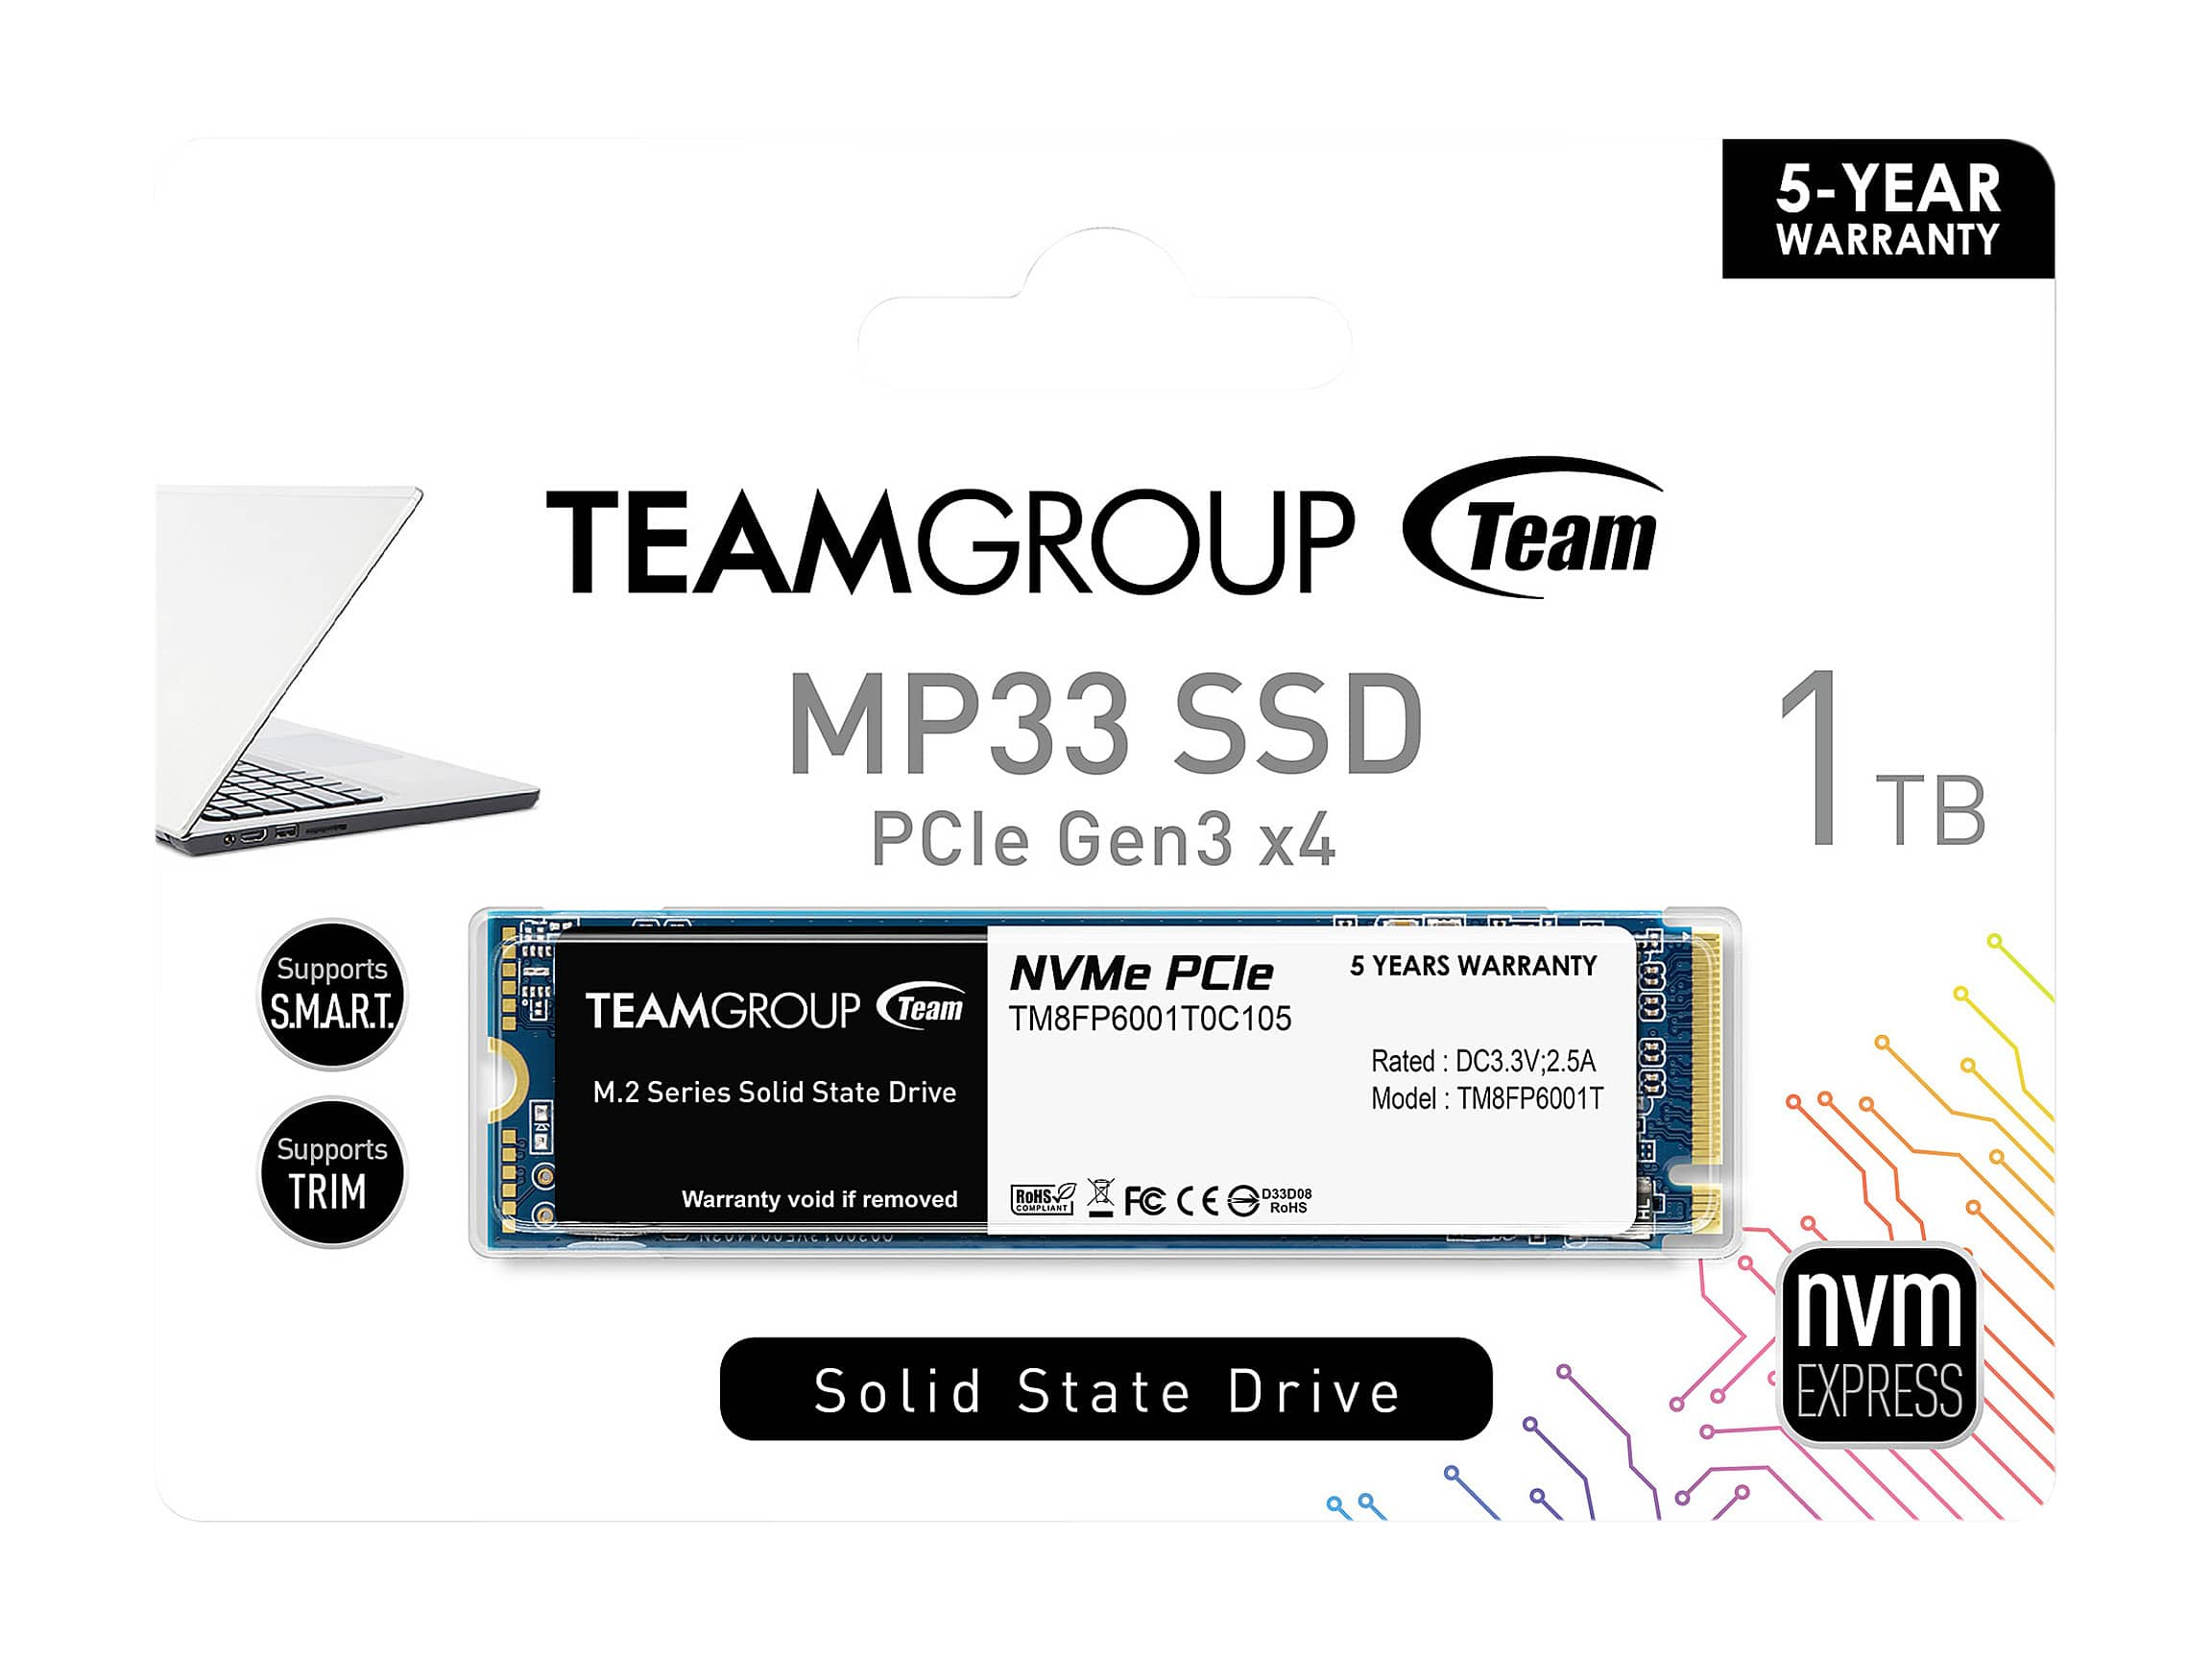 Team Group MP33 M.2 1TB PCIe 3.0 x4 with NVMe 1.3 3D NAND Internal Solid State Drive (SSD) - $89.99 at NewEgg